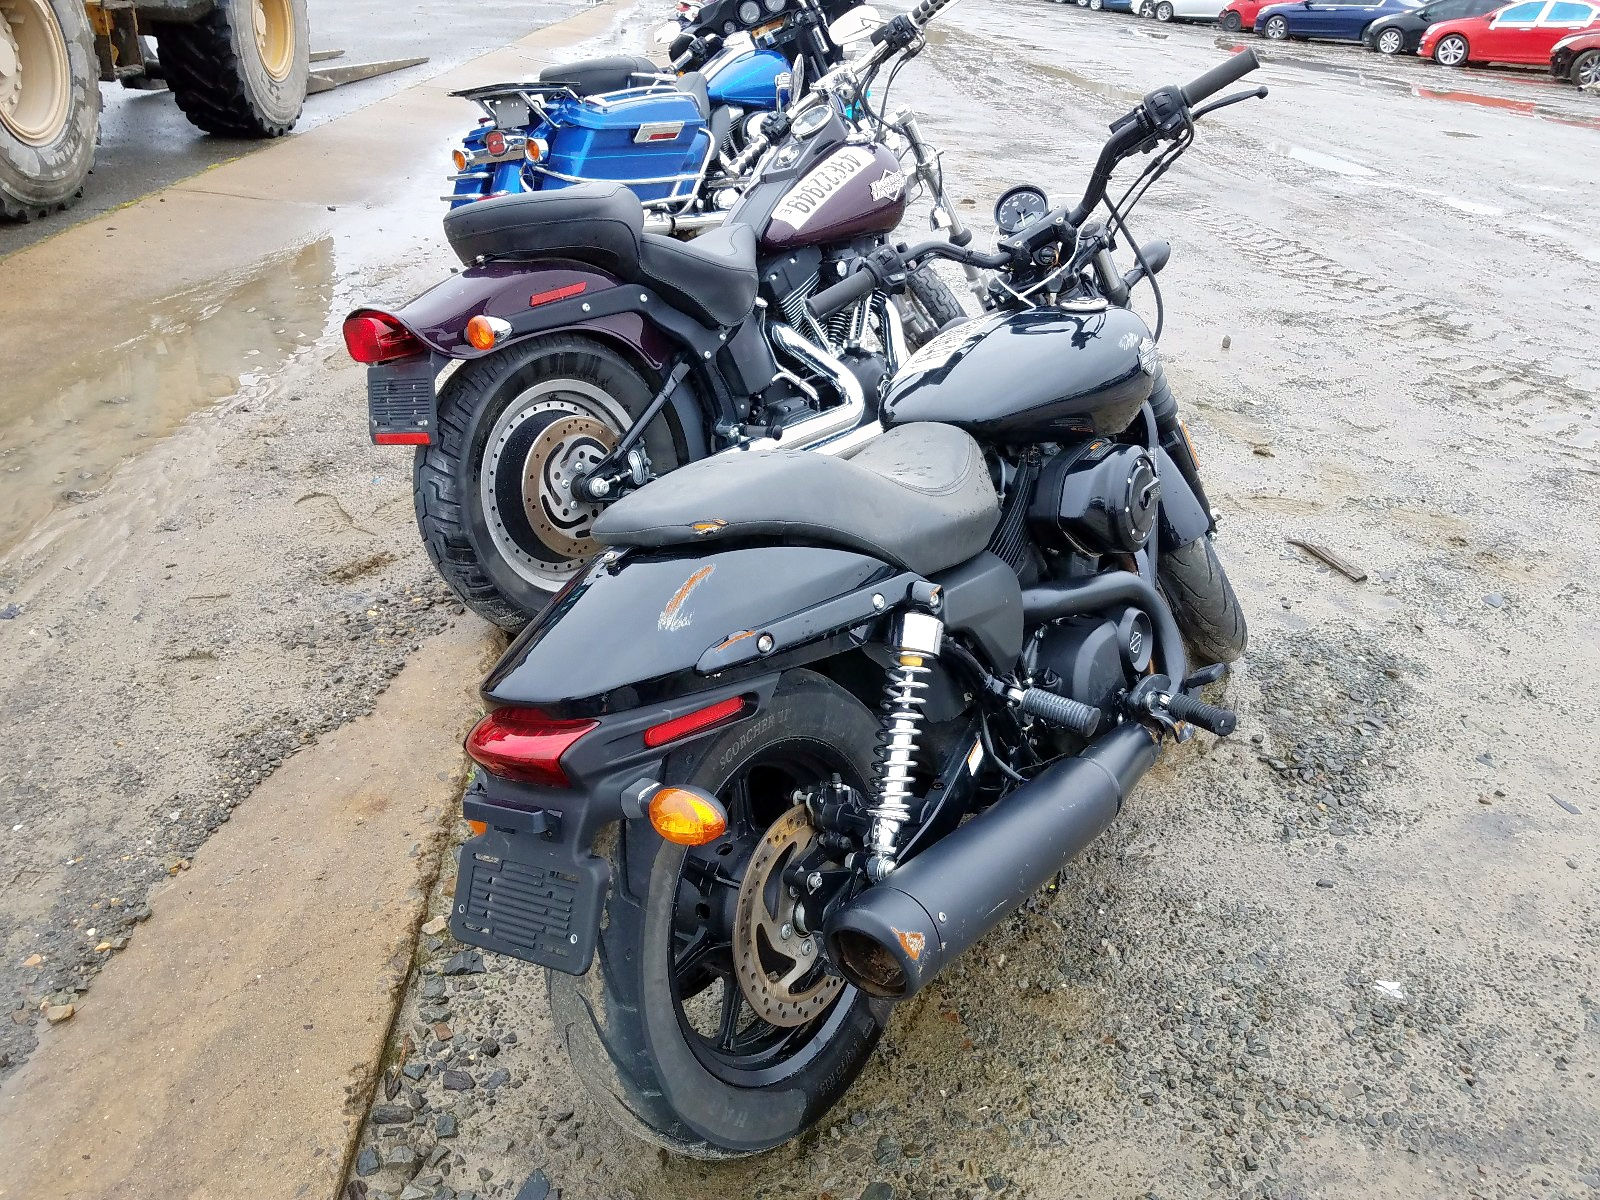 2015 Harley-Davidson XG500 for sale at Copart Conway, AR ...